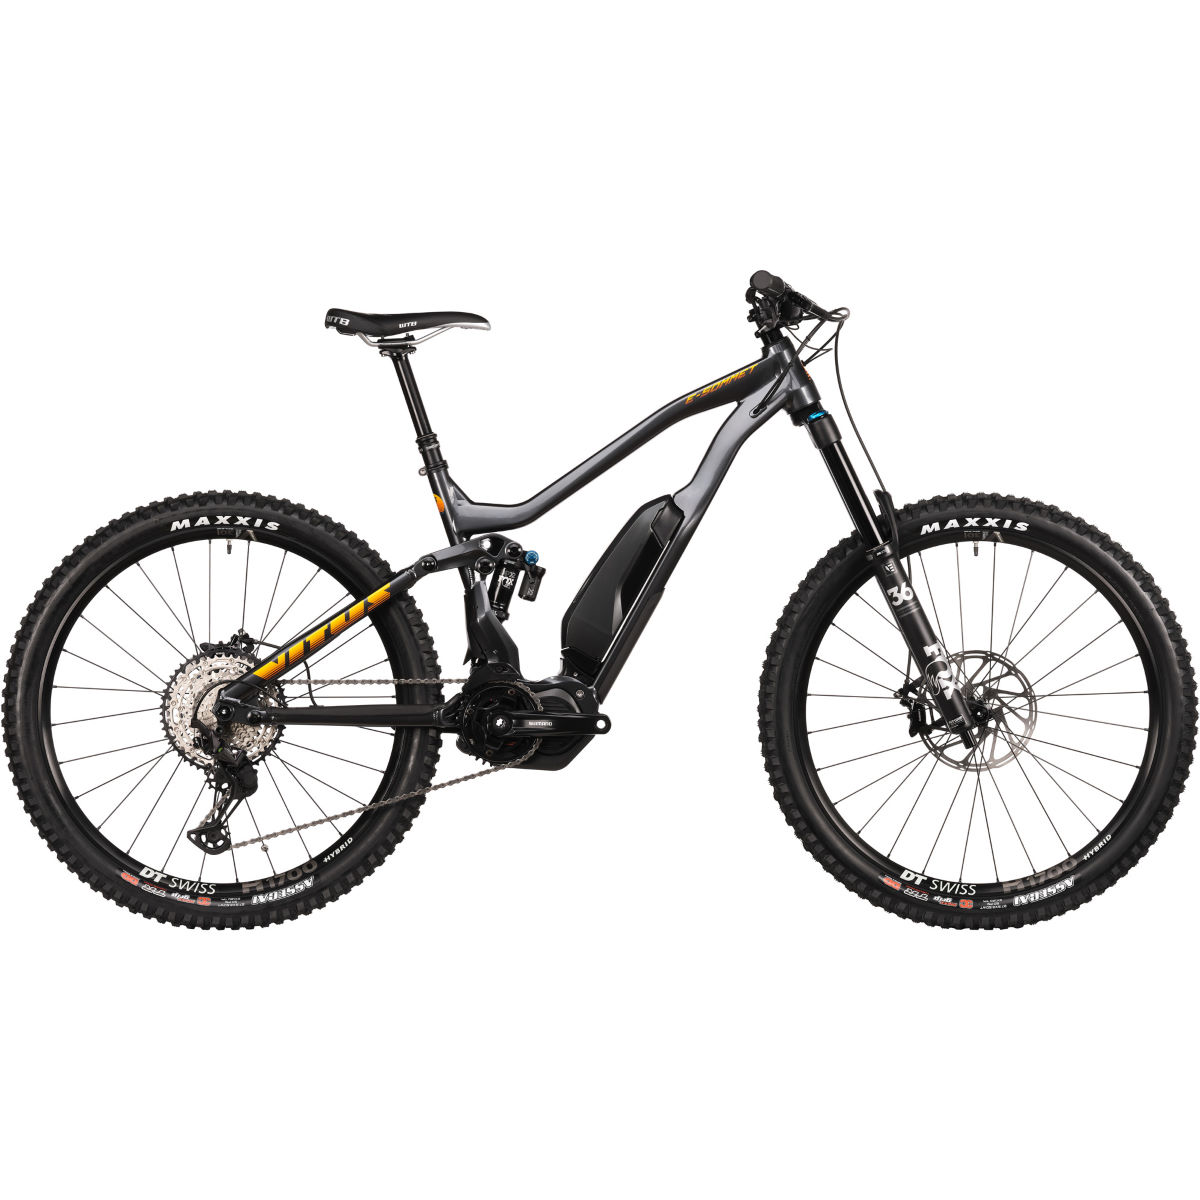 Vitus Vitus E-Sommet 27 VRS E-Bike (2020) - Sunset   Electric Mountain Bikes